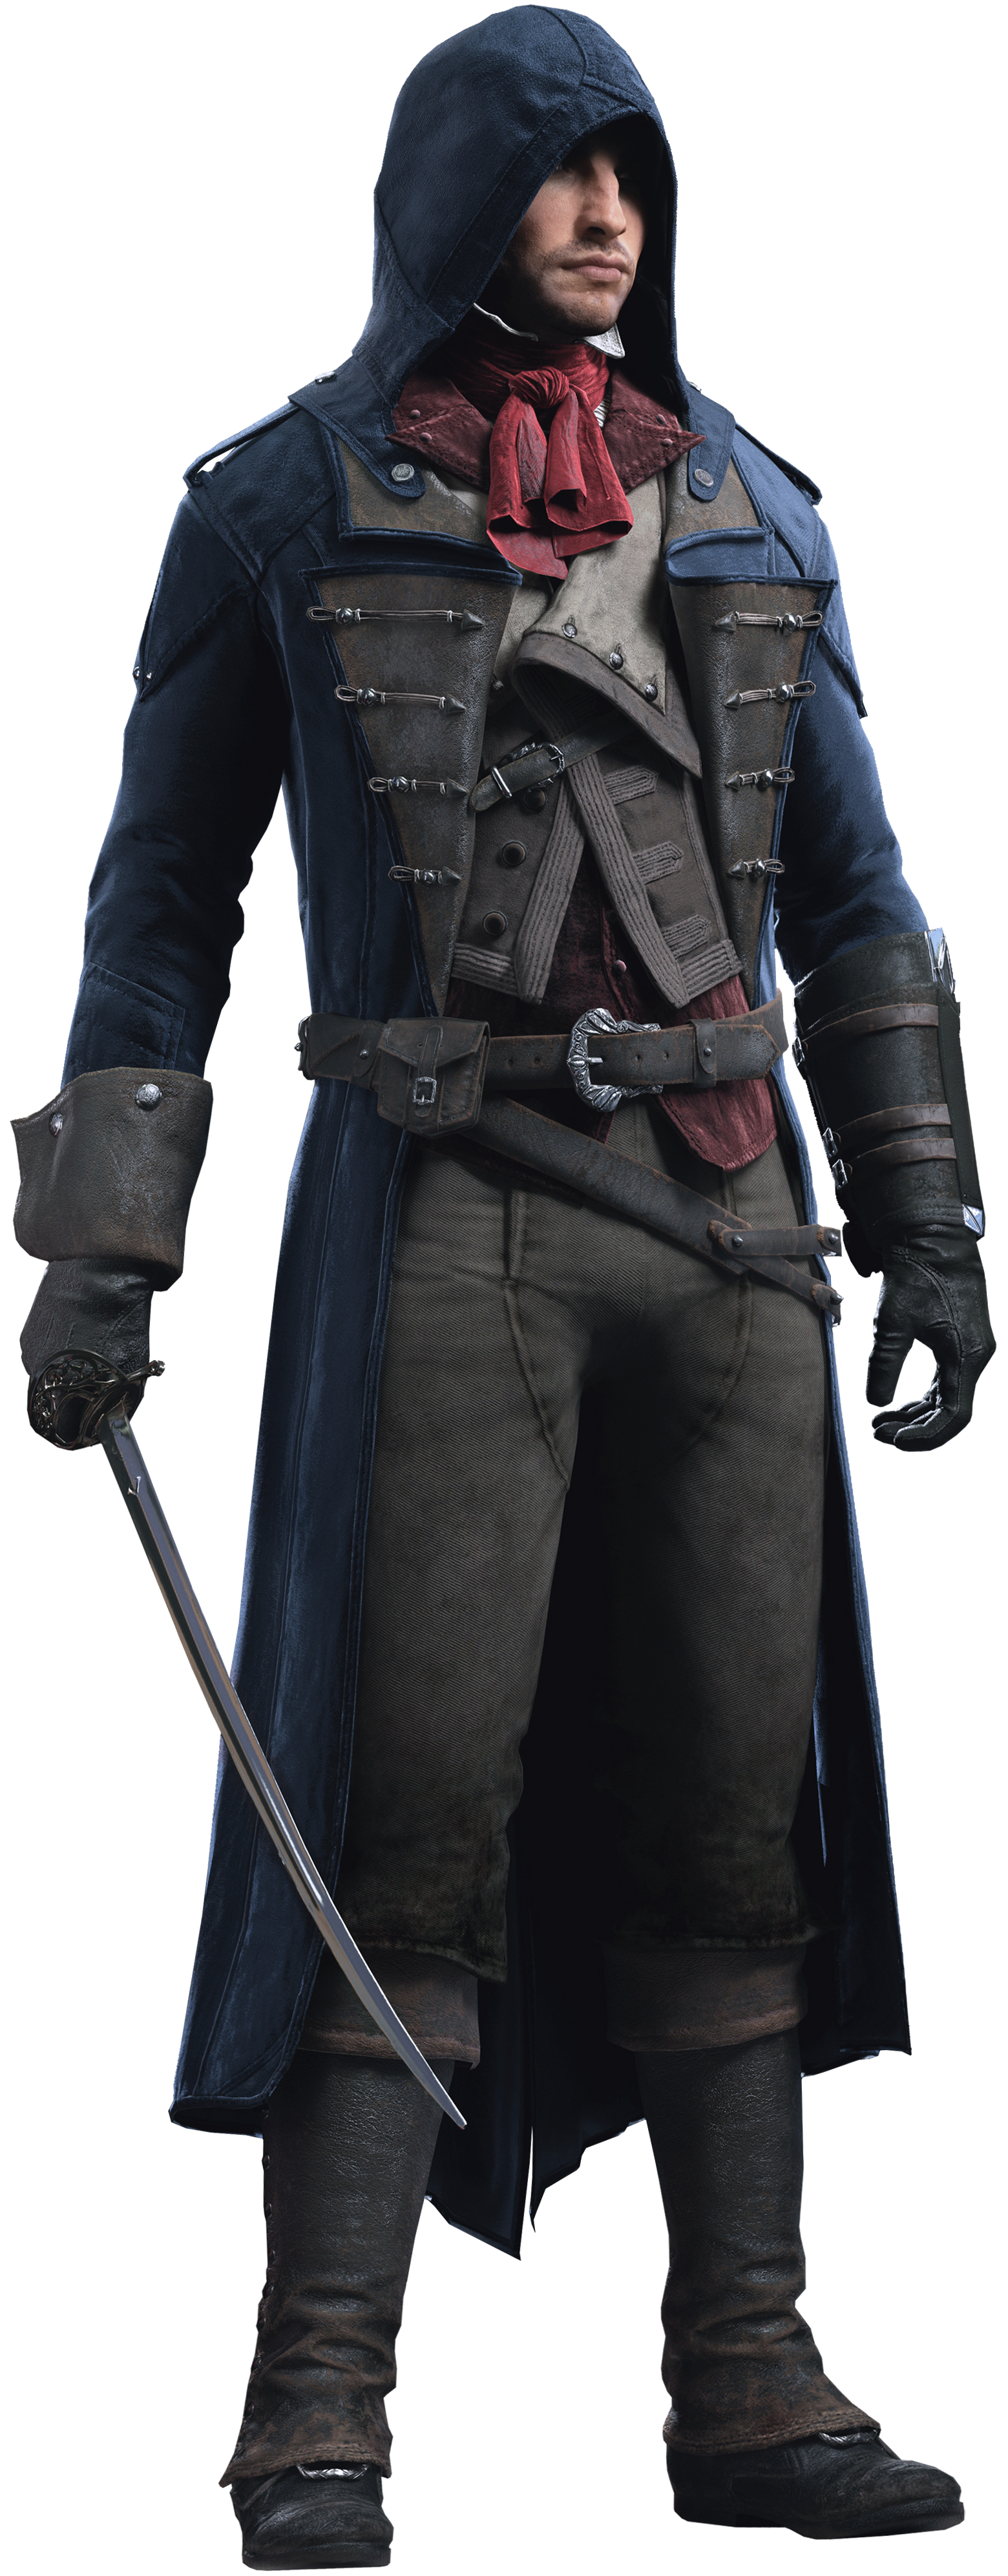 arno dorian assassin s creed wiki fandom powered by wikia